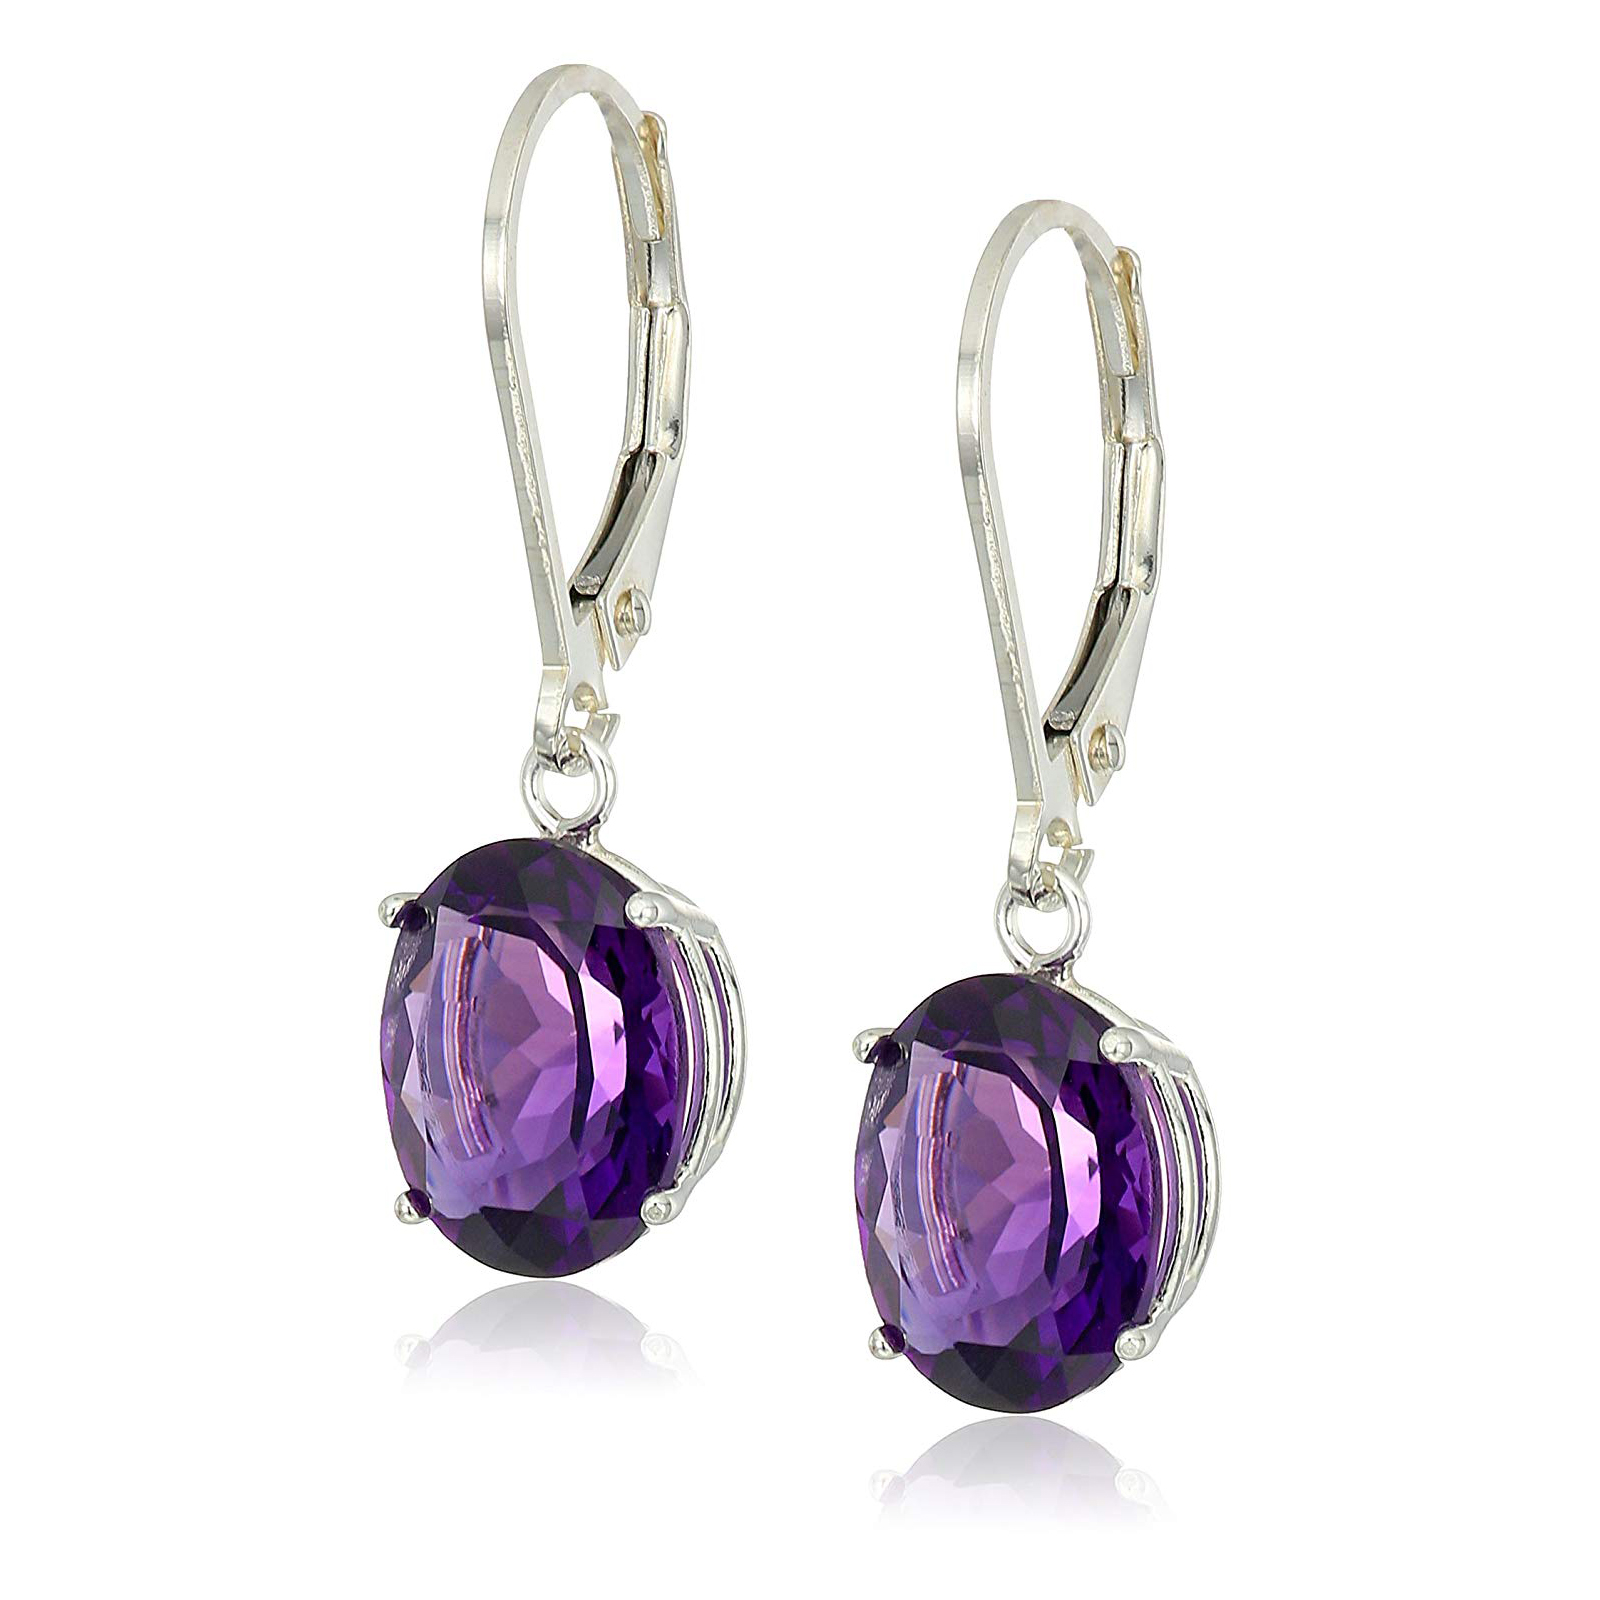 8x10mm Sterling Silver Oval Amethyst Genuine Gemstone Lever back Earrings